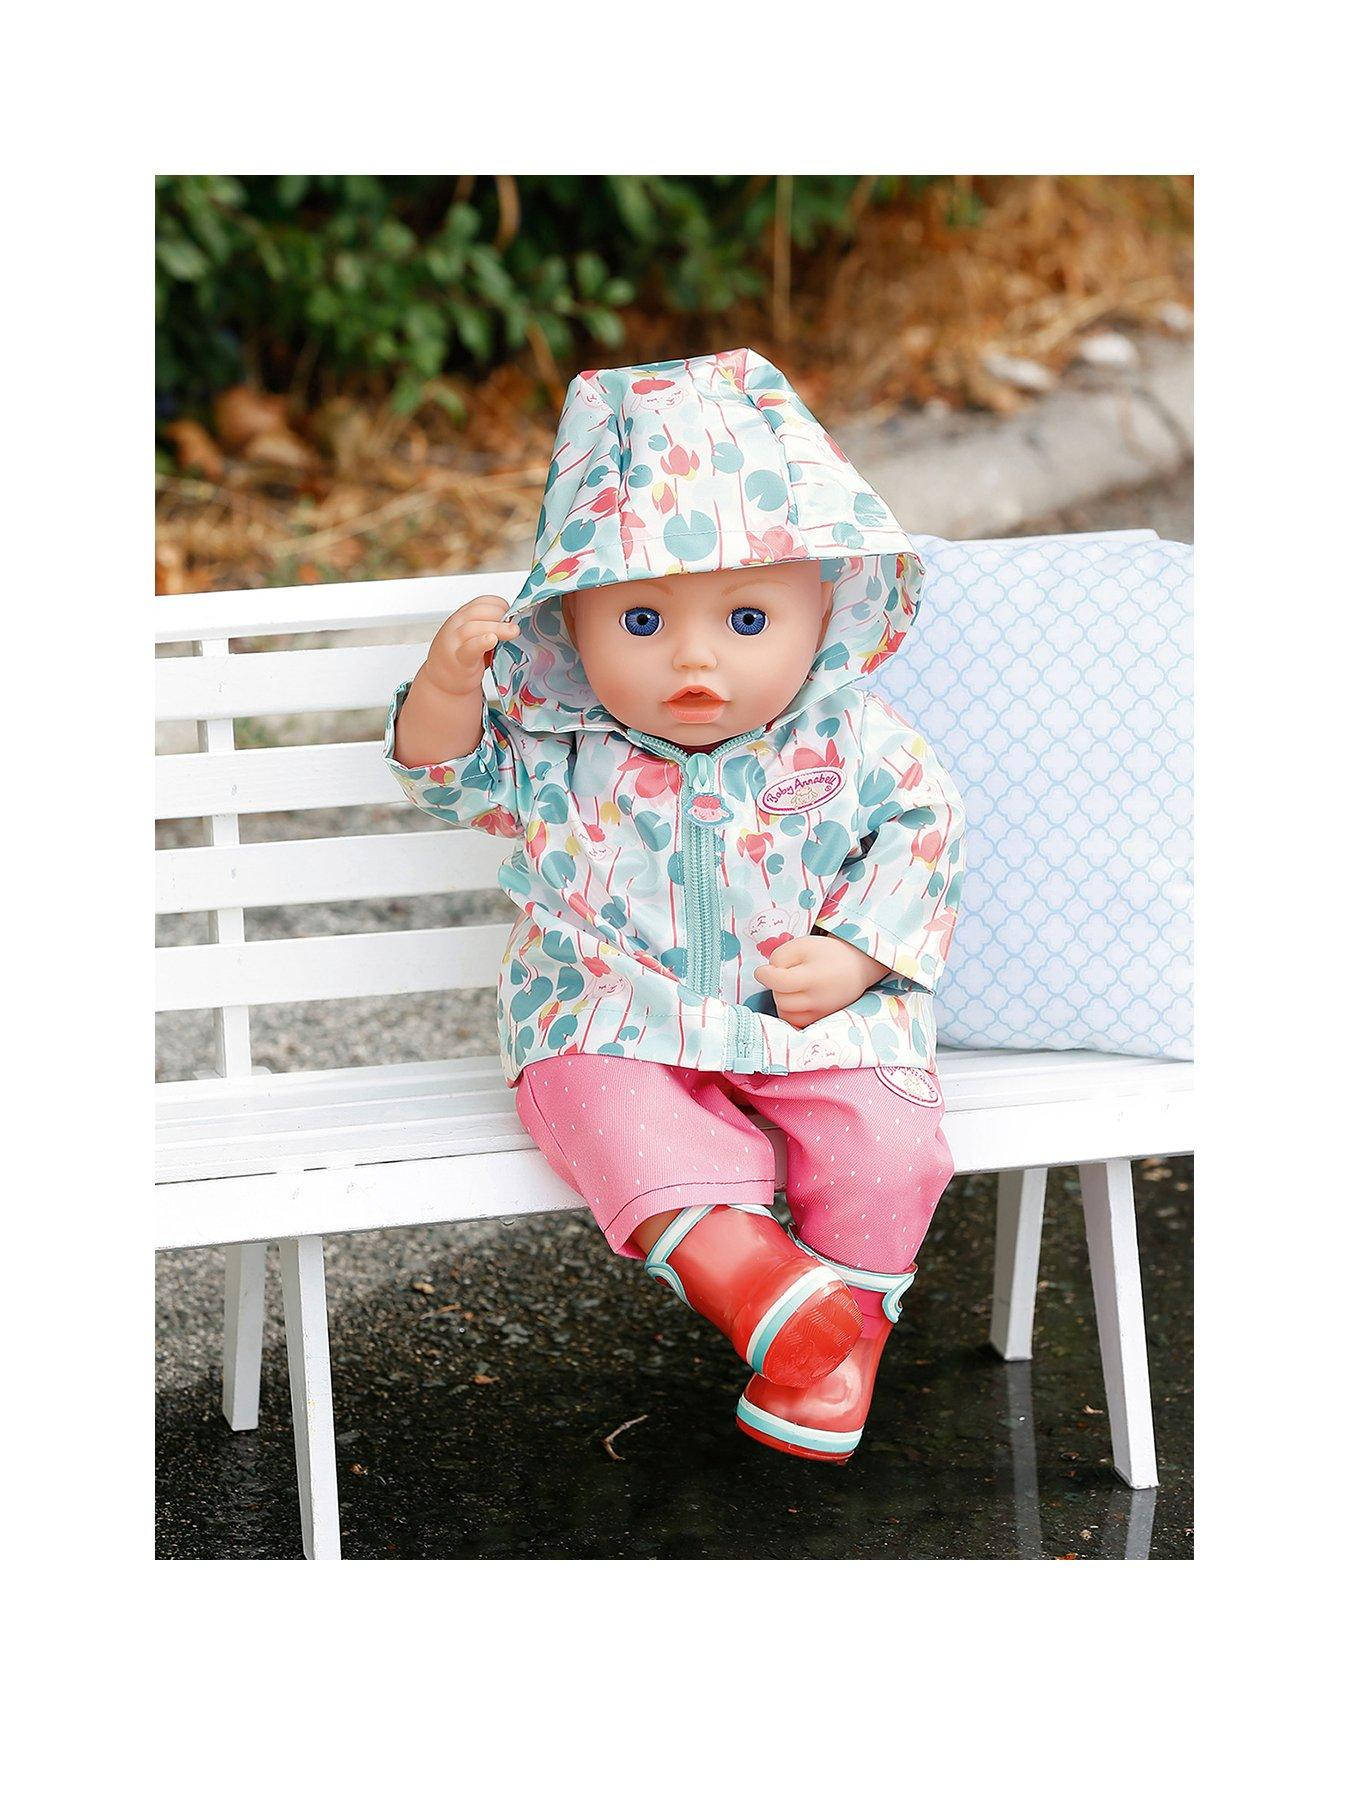 Compare prices for Baby Annabell Deluxe Set Puddle Jumping